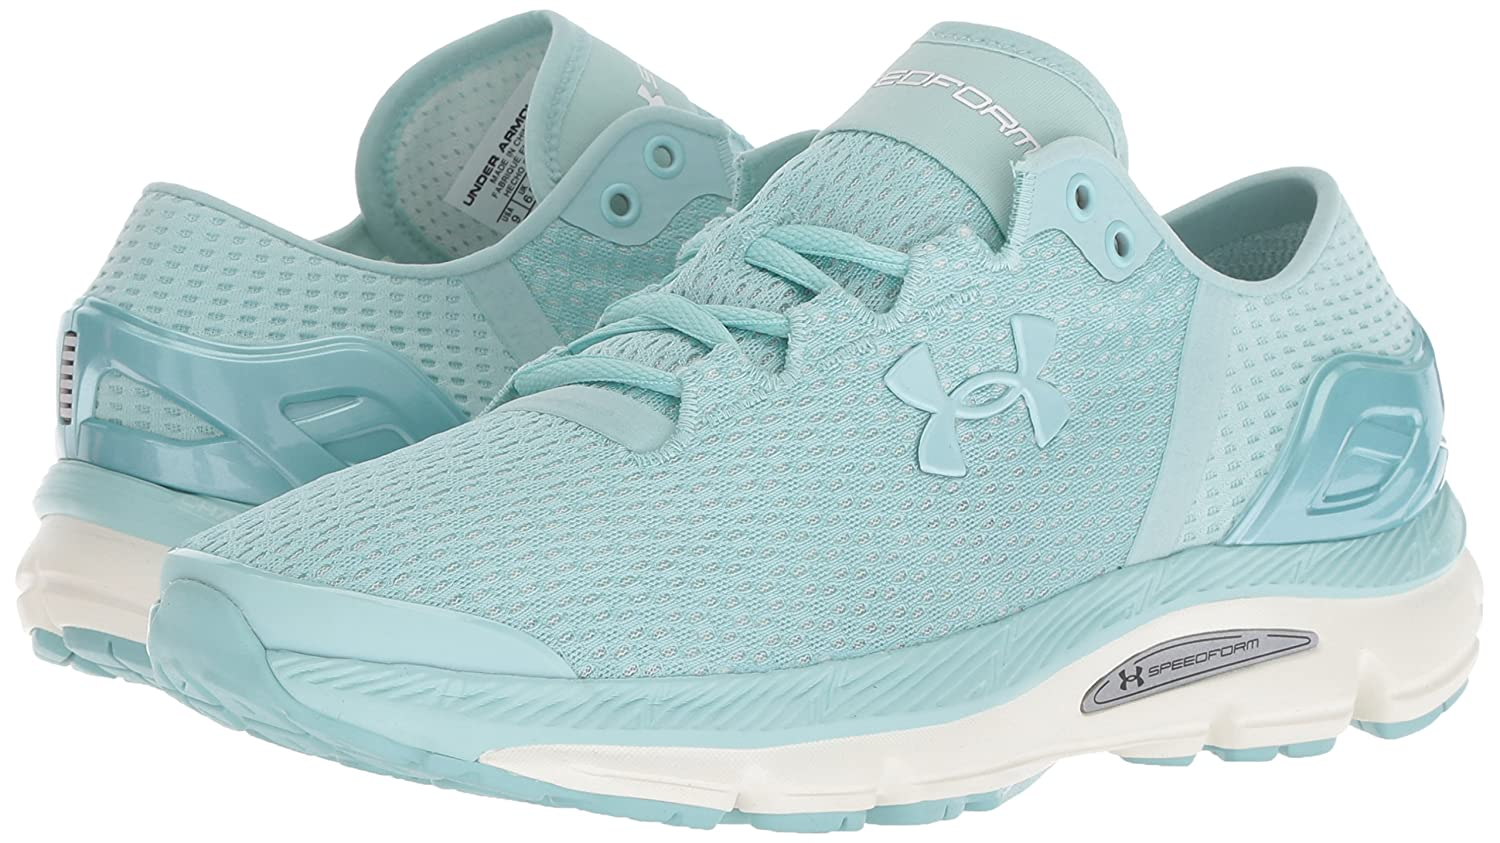 Under Armour Women's Speedform Intake 2 Running Shoe B07742SQP3 9 M US|Seaport (300)/Ivory